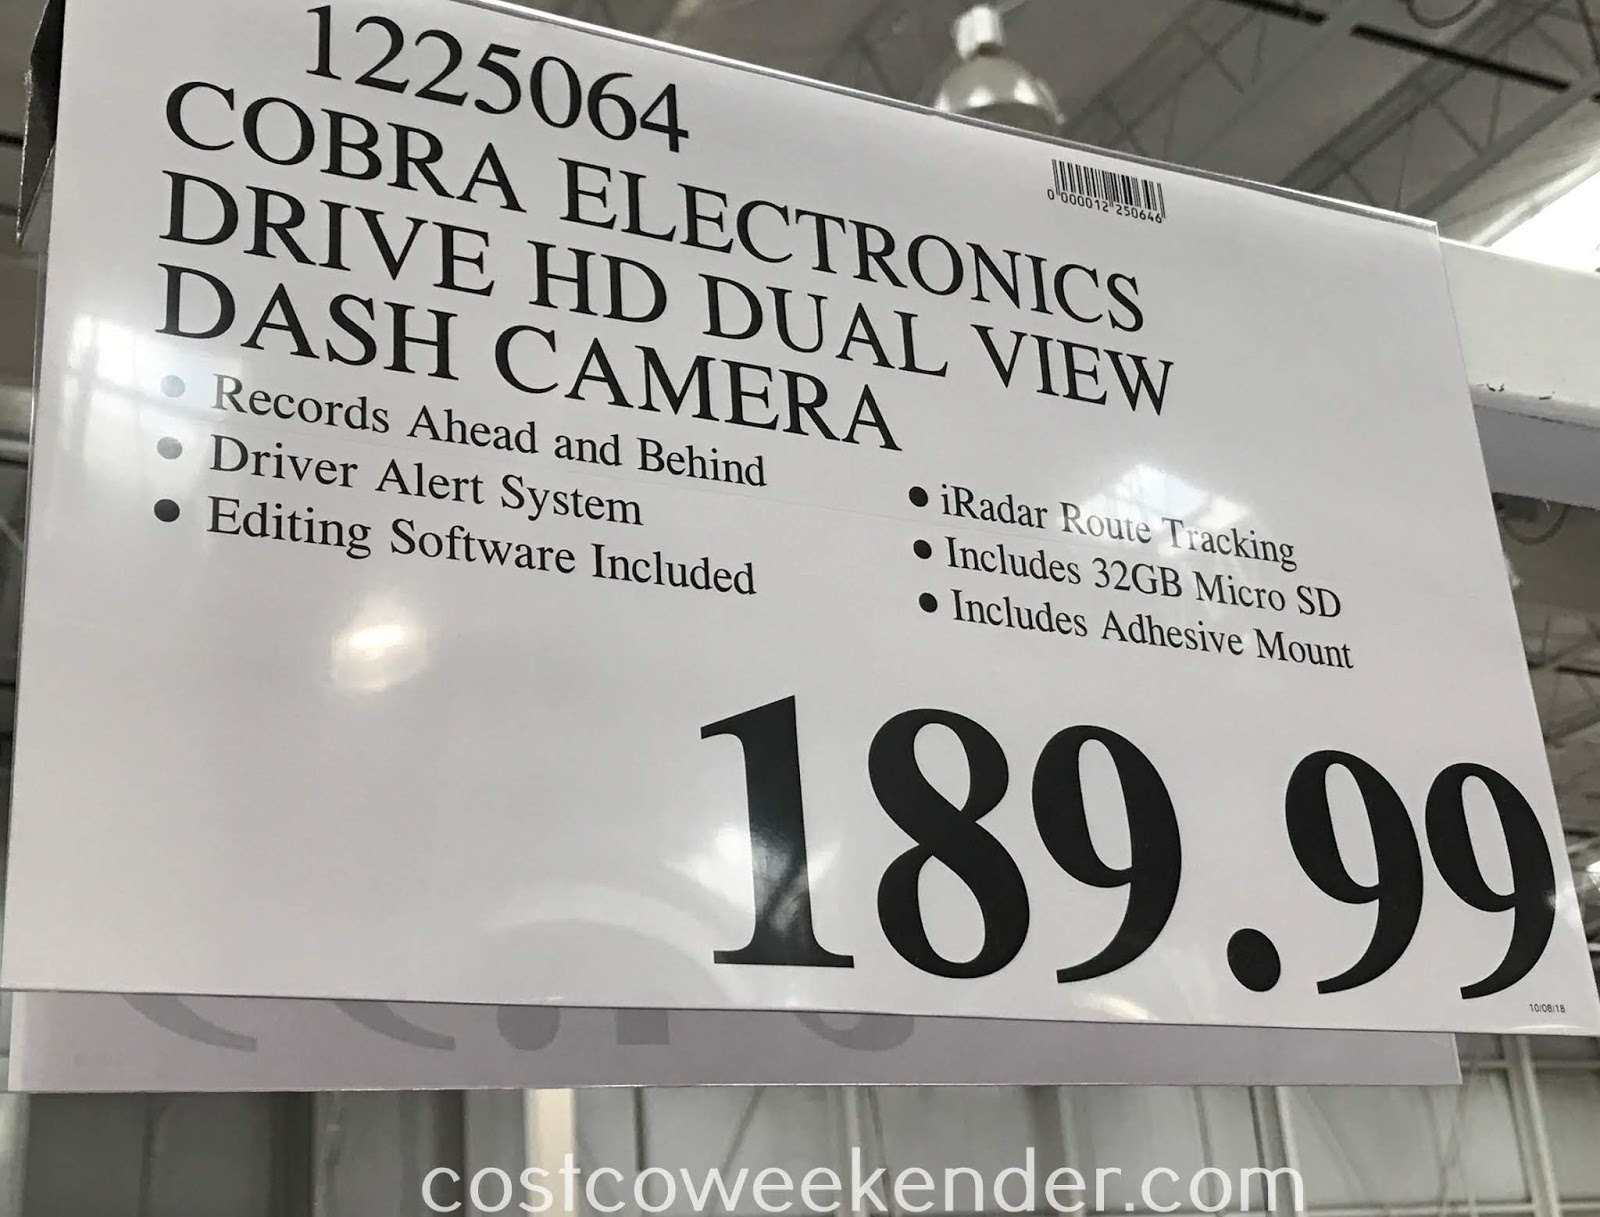 Deal for the Cobra Drive HD Dash Camera Dual View System at Costco